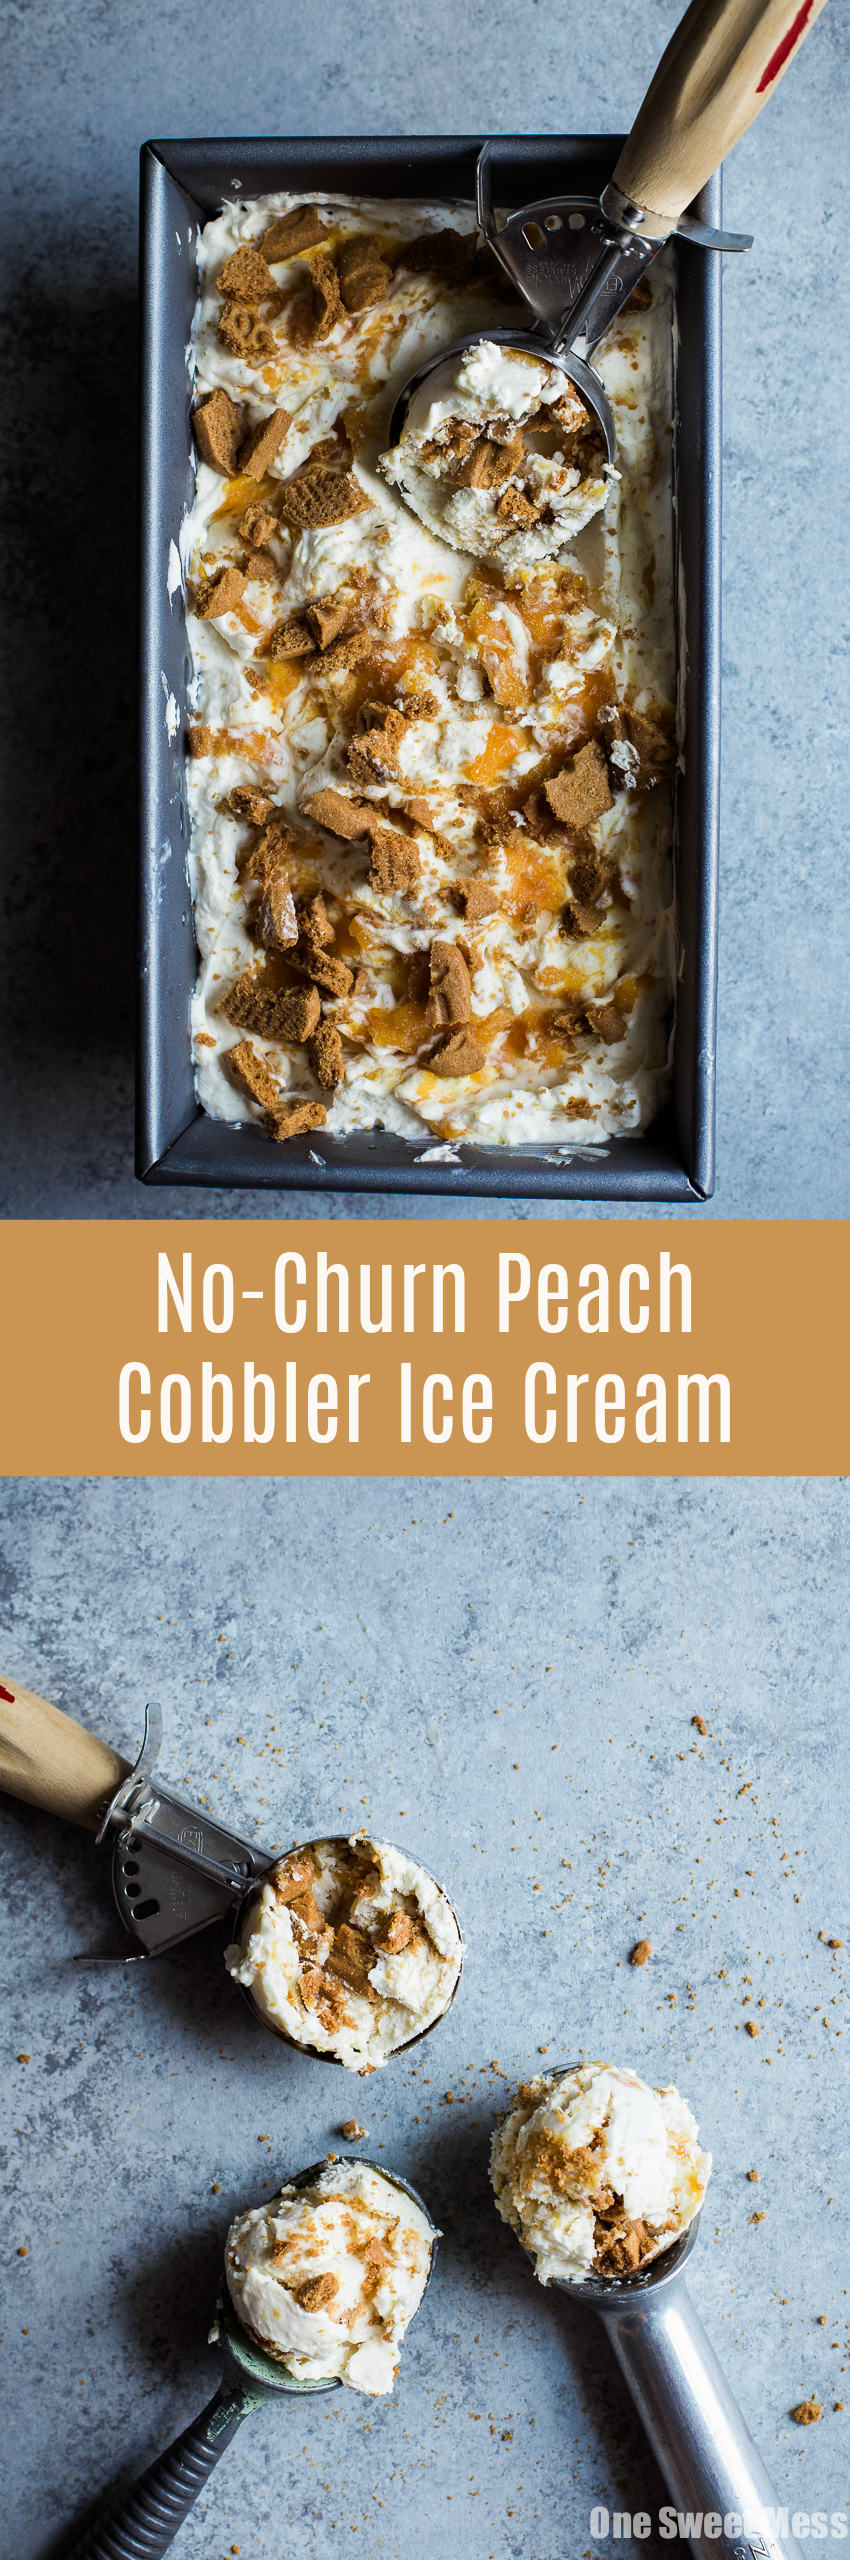 No-Churn Peach Cobbler Ice Cream: Layers of creamy vanilla ice cream, homemade peach bourbon compote, and crunchy biscoff cookies. No ice cream machine required for this easy summer treat!